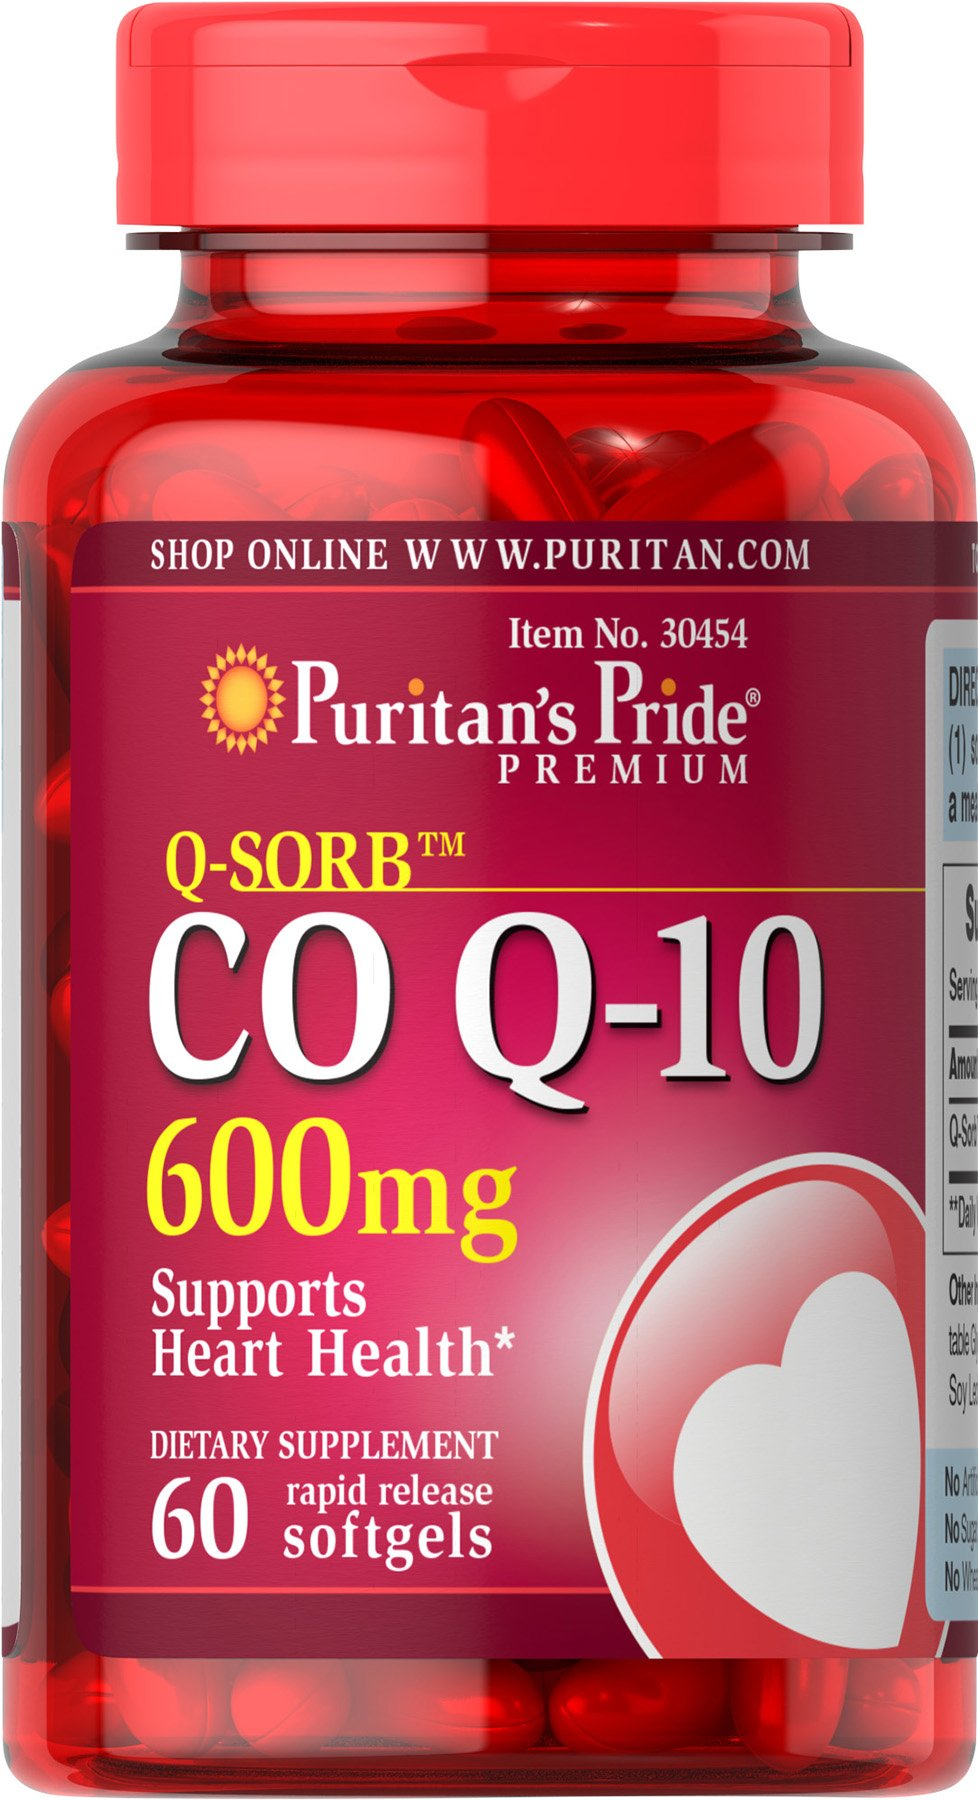 Puritan's Pride Q-SORB CoQ10 (Coenzyme Q10) 600 mg, Natural Antioxidant, Dietary Supplement for Blood Pressue Management, 60 Rapid Release Softgels